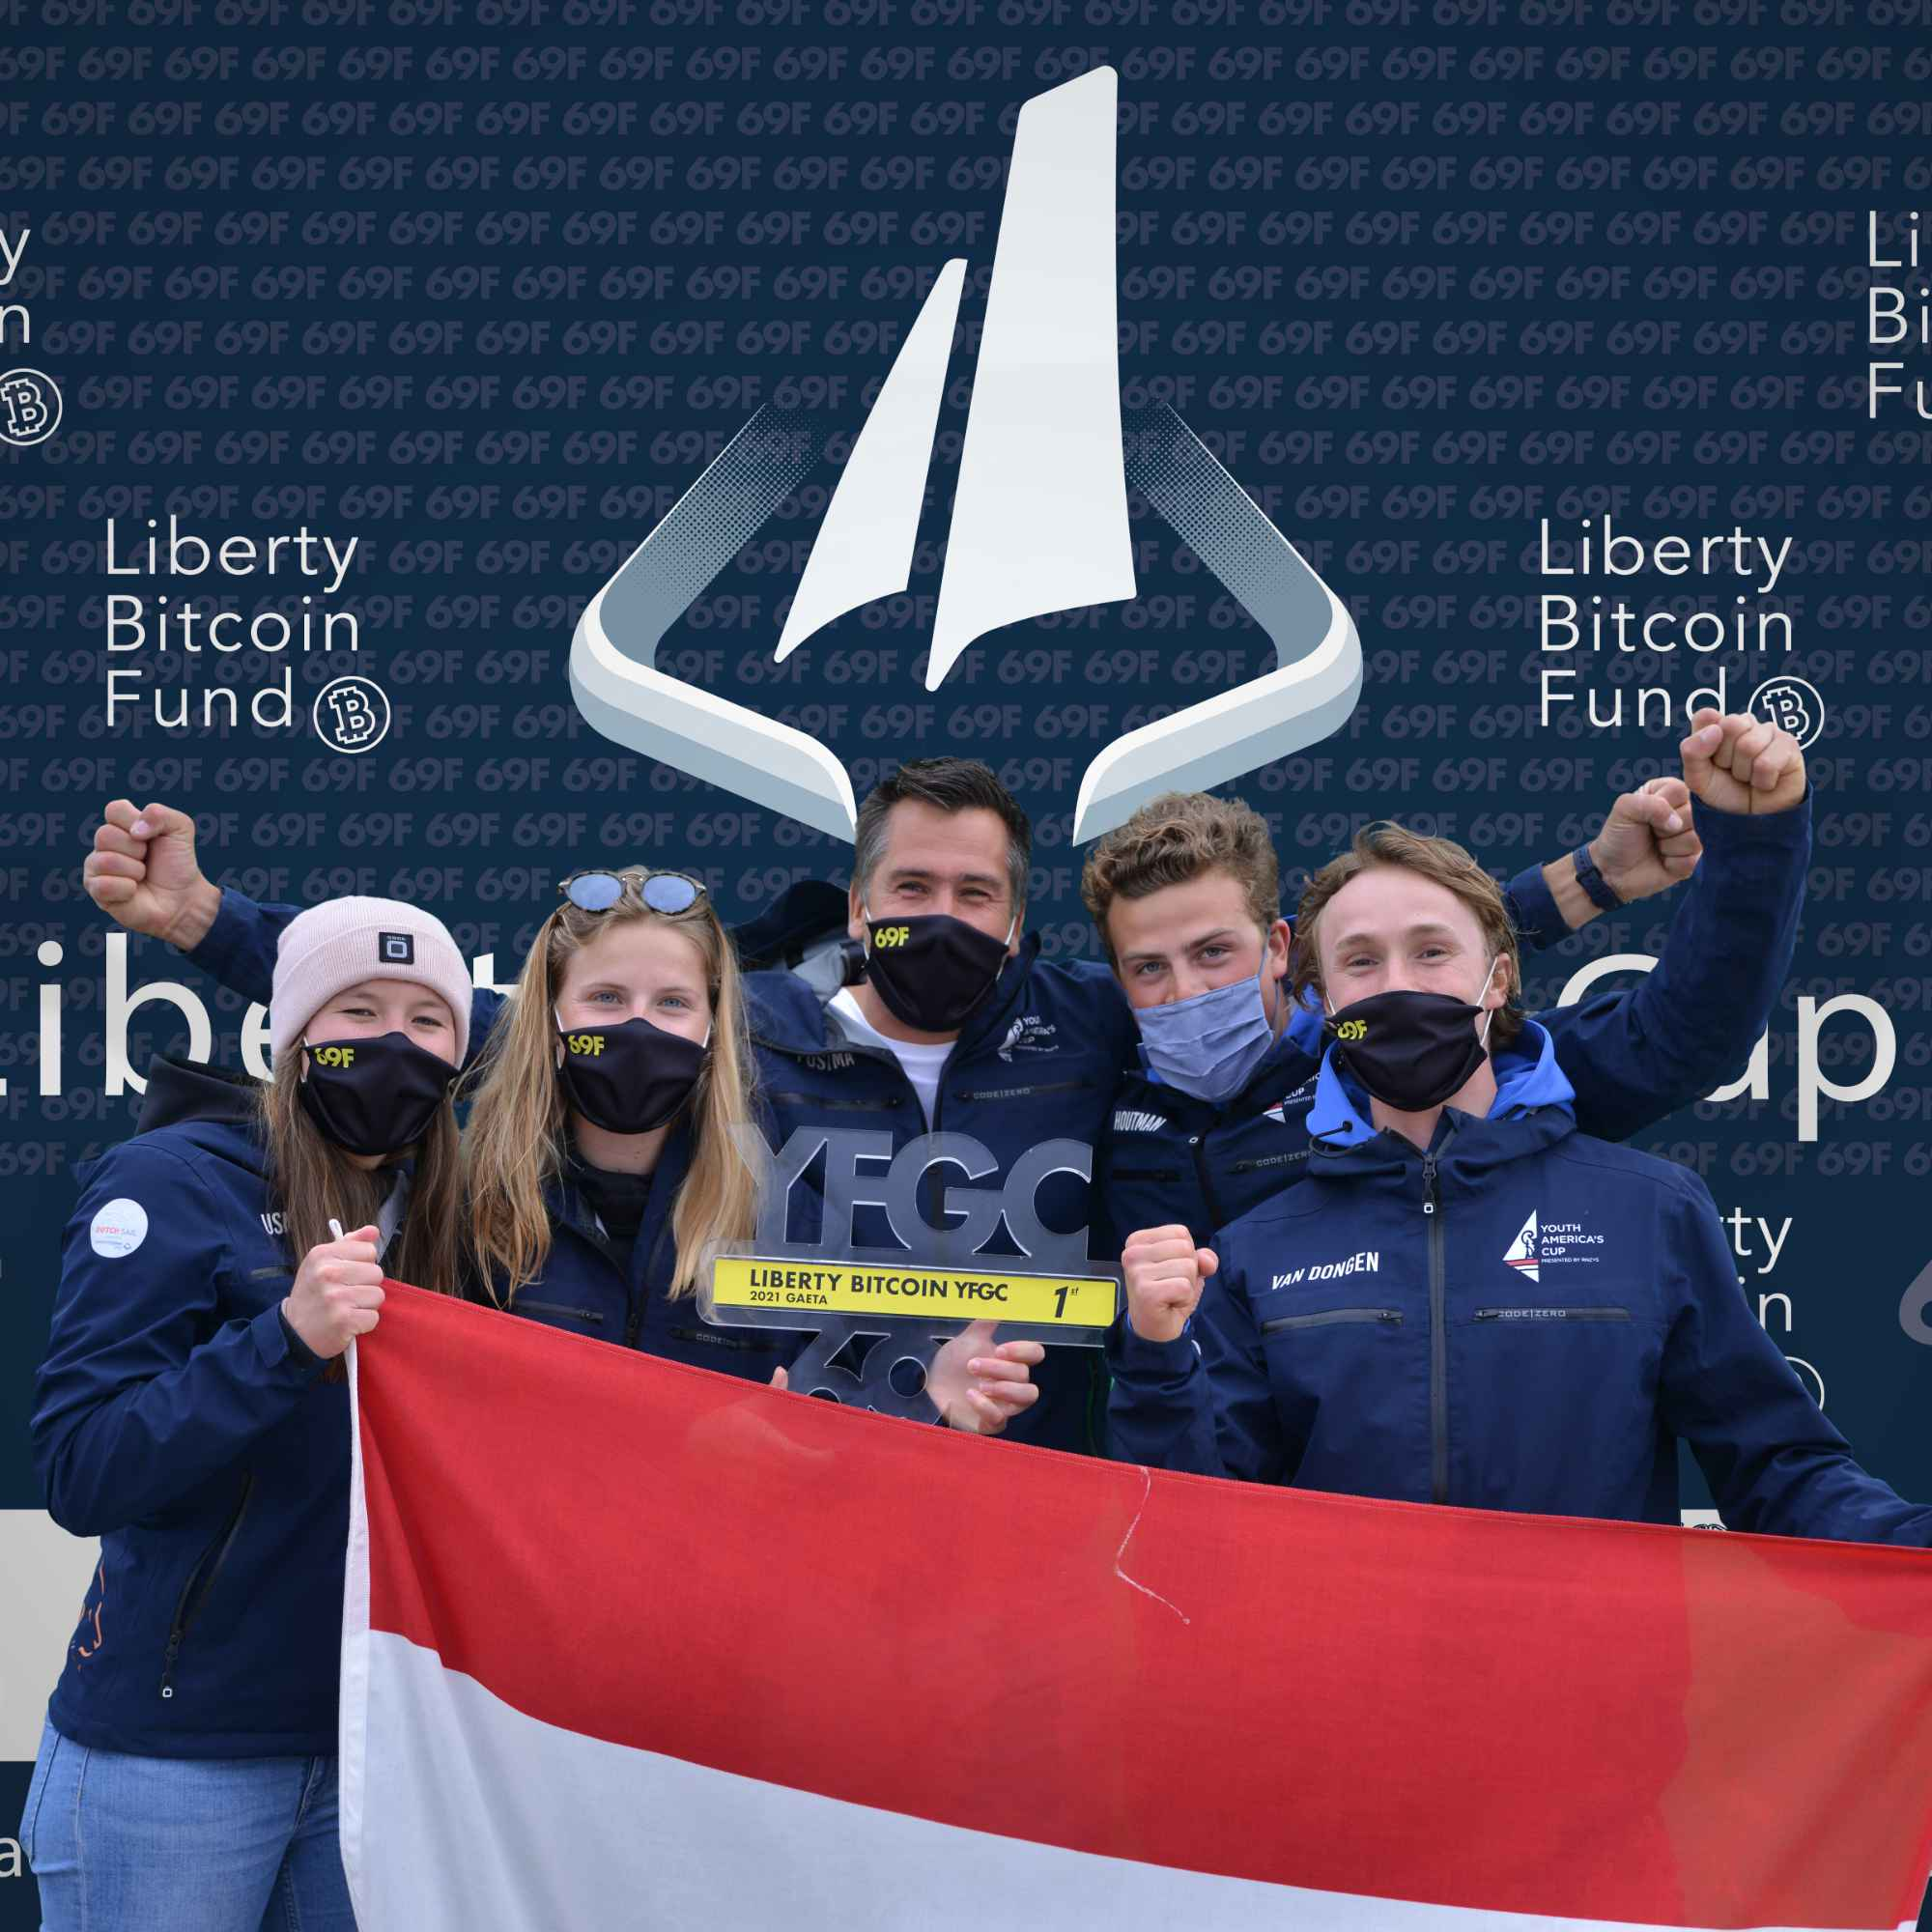 Janssen de Jong win in Gaeta as all eyes turn to act 2 of the Liberty Bitcoin Cup